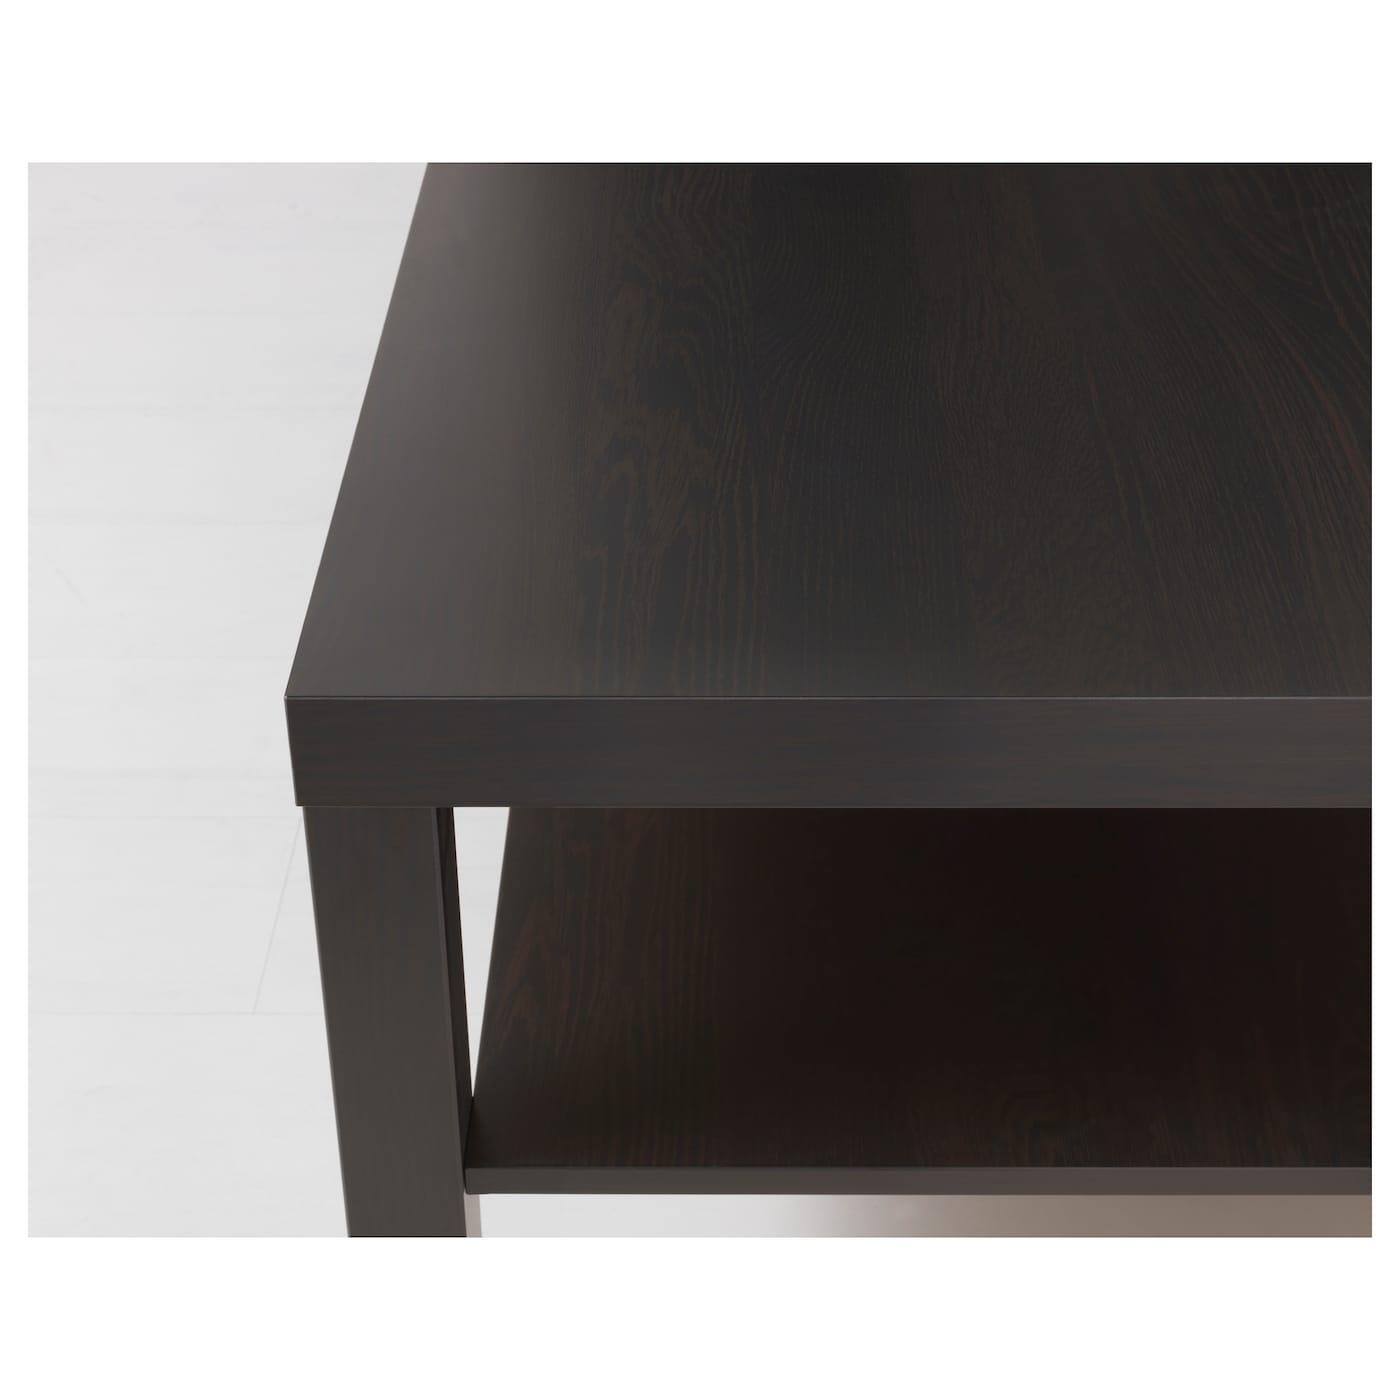 LACK Coffee Table Black-brown 118 X 78 Cm